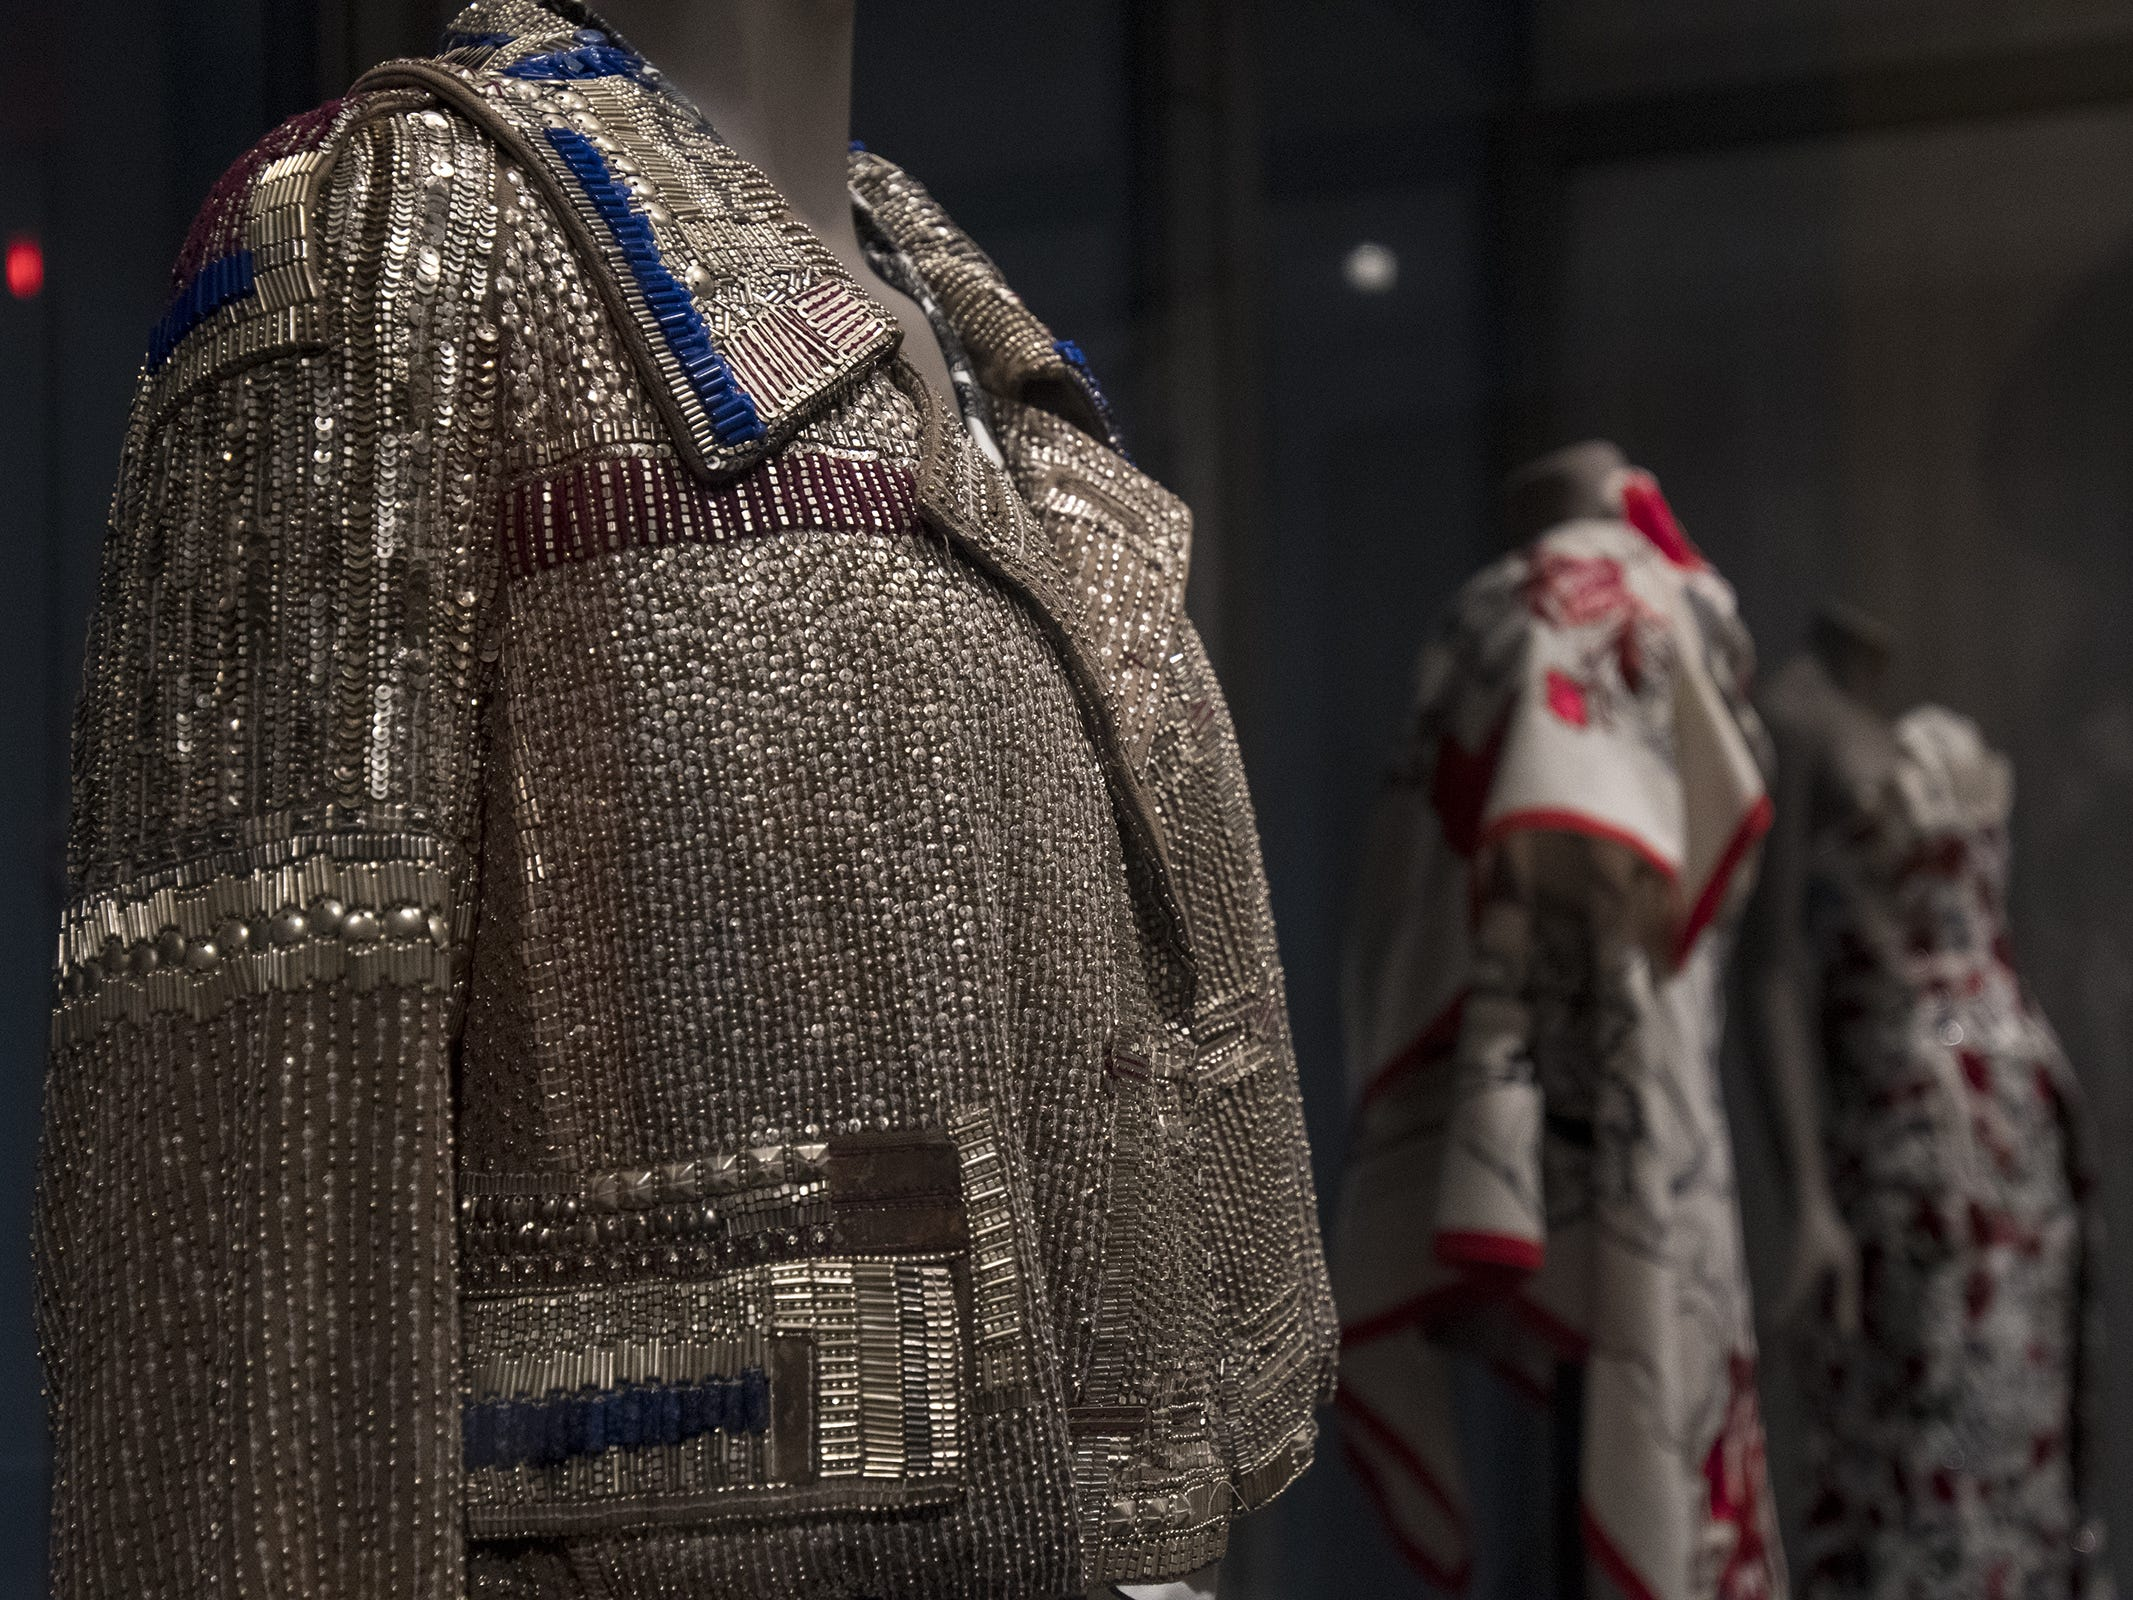 This jacket by designer Dries Van Noten is a part of the new Fabrics of India exhibit at the Cincinnati Art Museum.